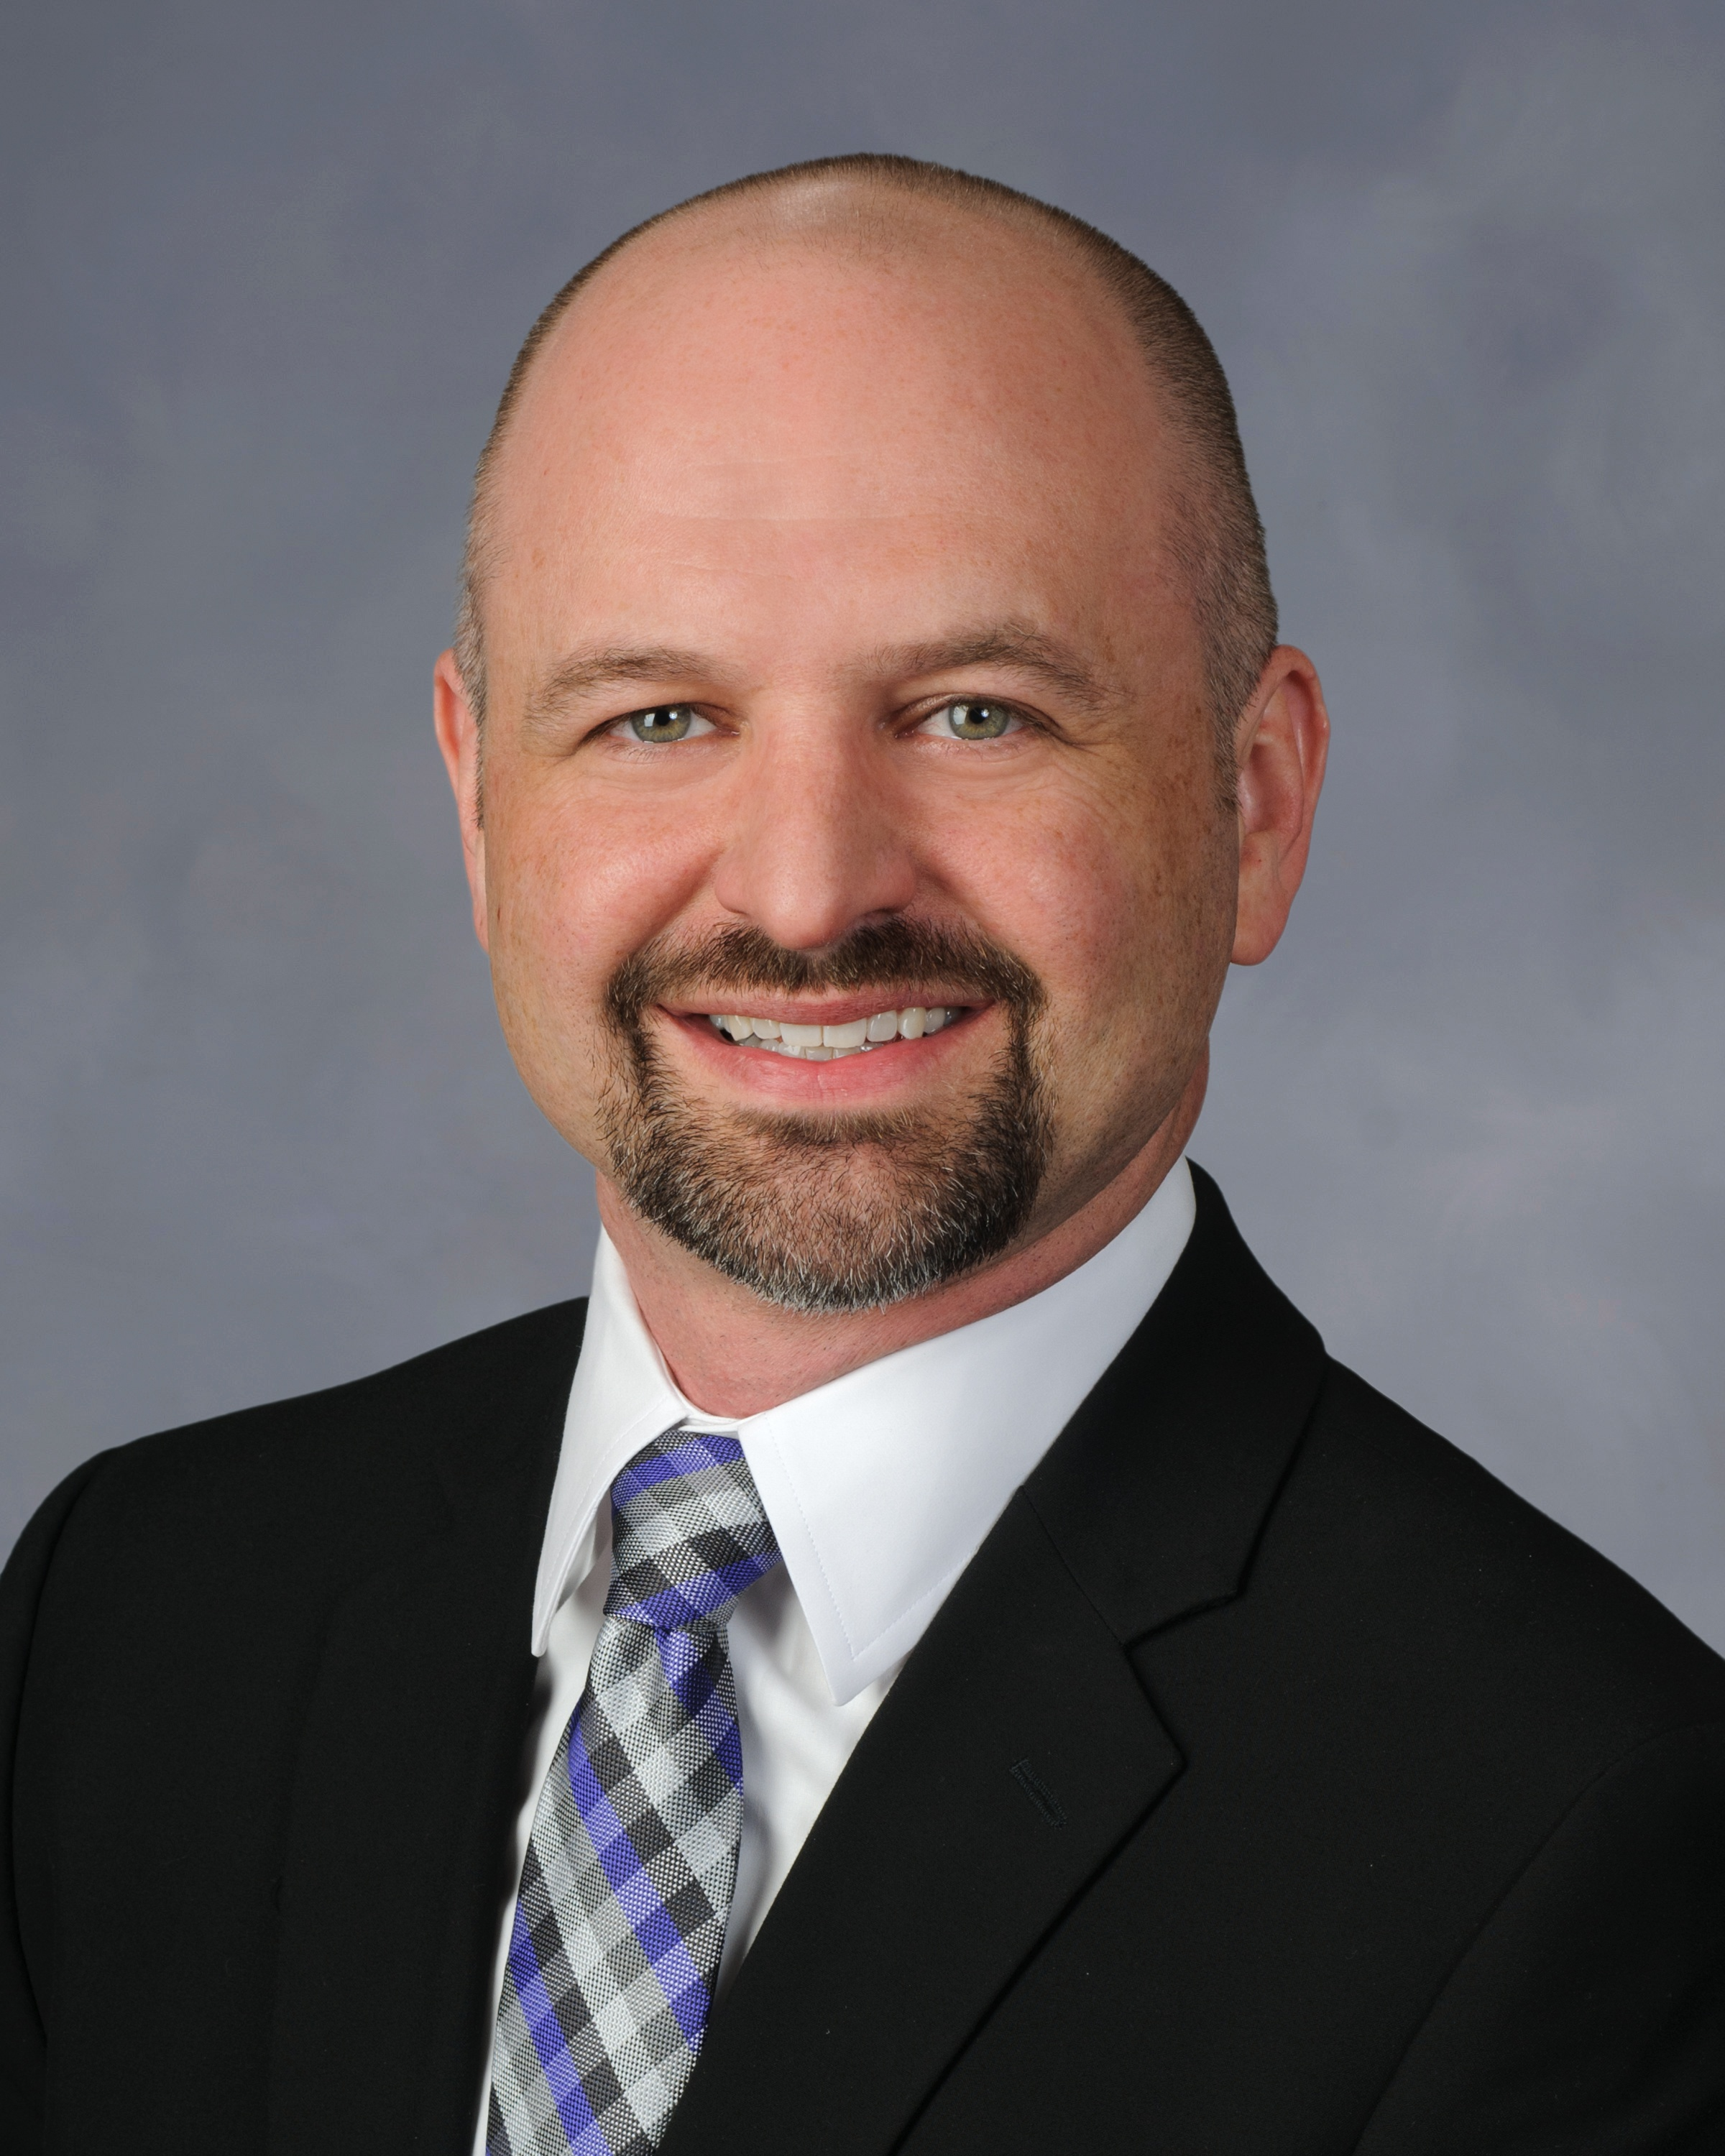 Daren Smith, Clinical Solutions Specialist, Surgical Information Systems